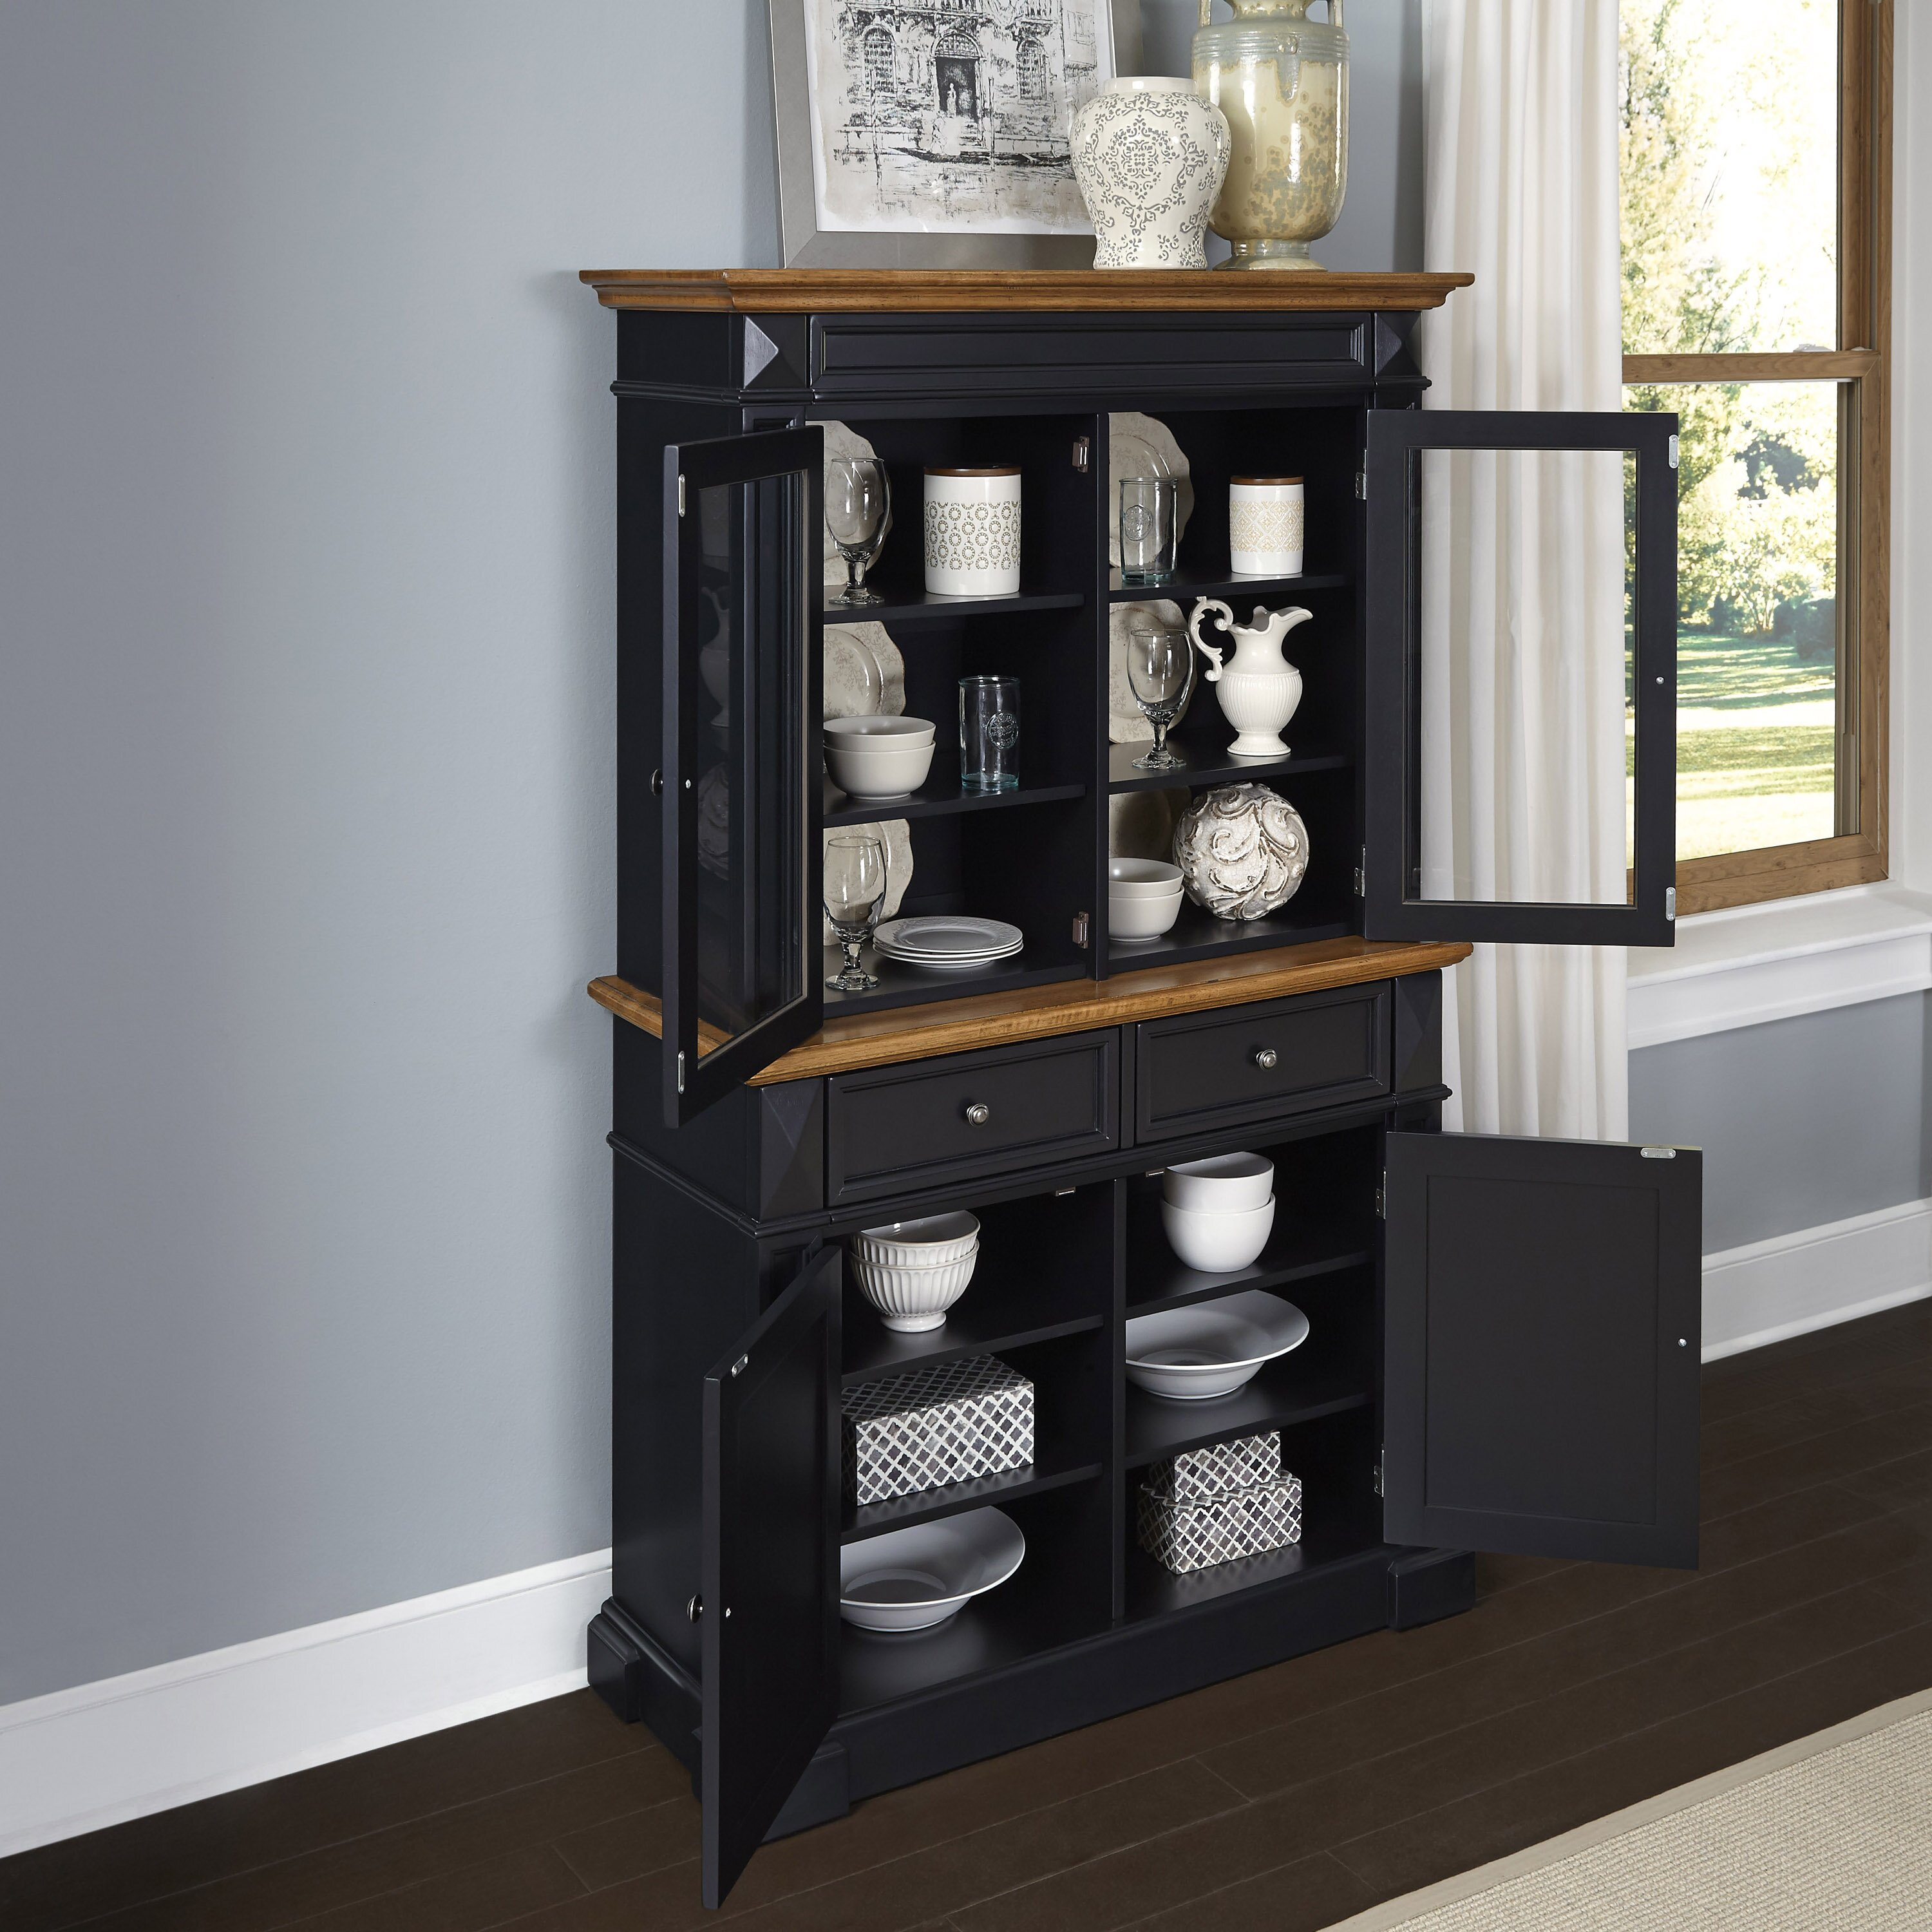 Kitchen China Cabinet: Home Styles Americana China Cabinet & Reviews